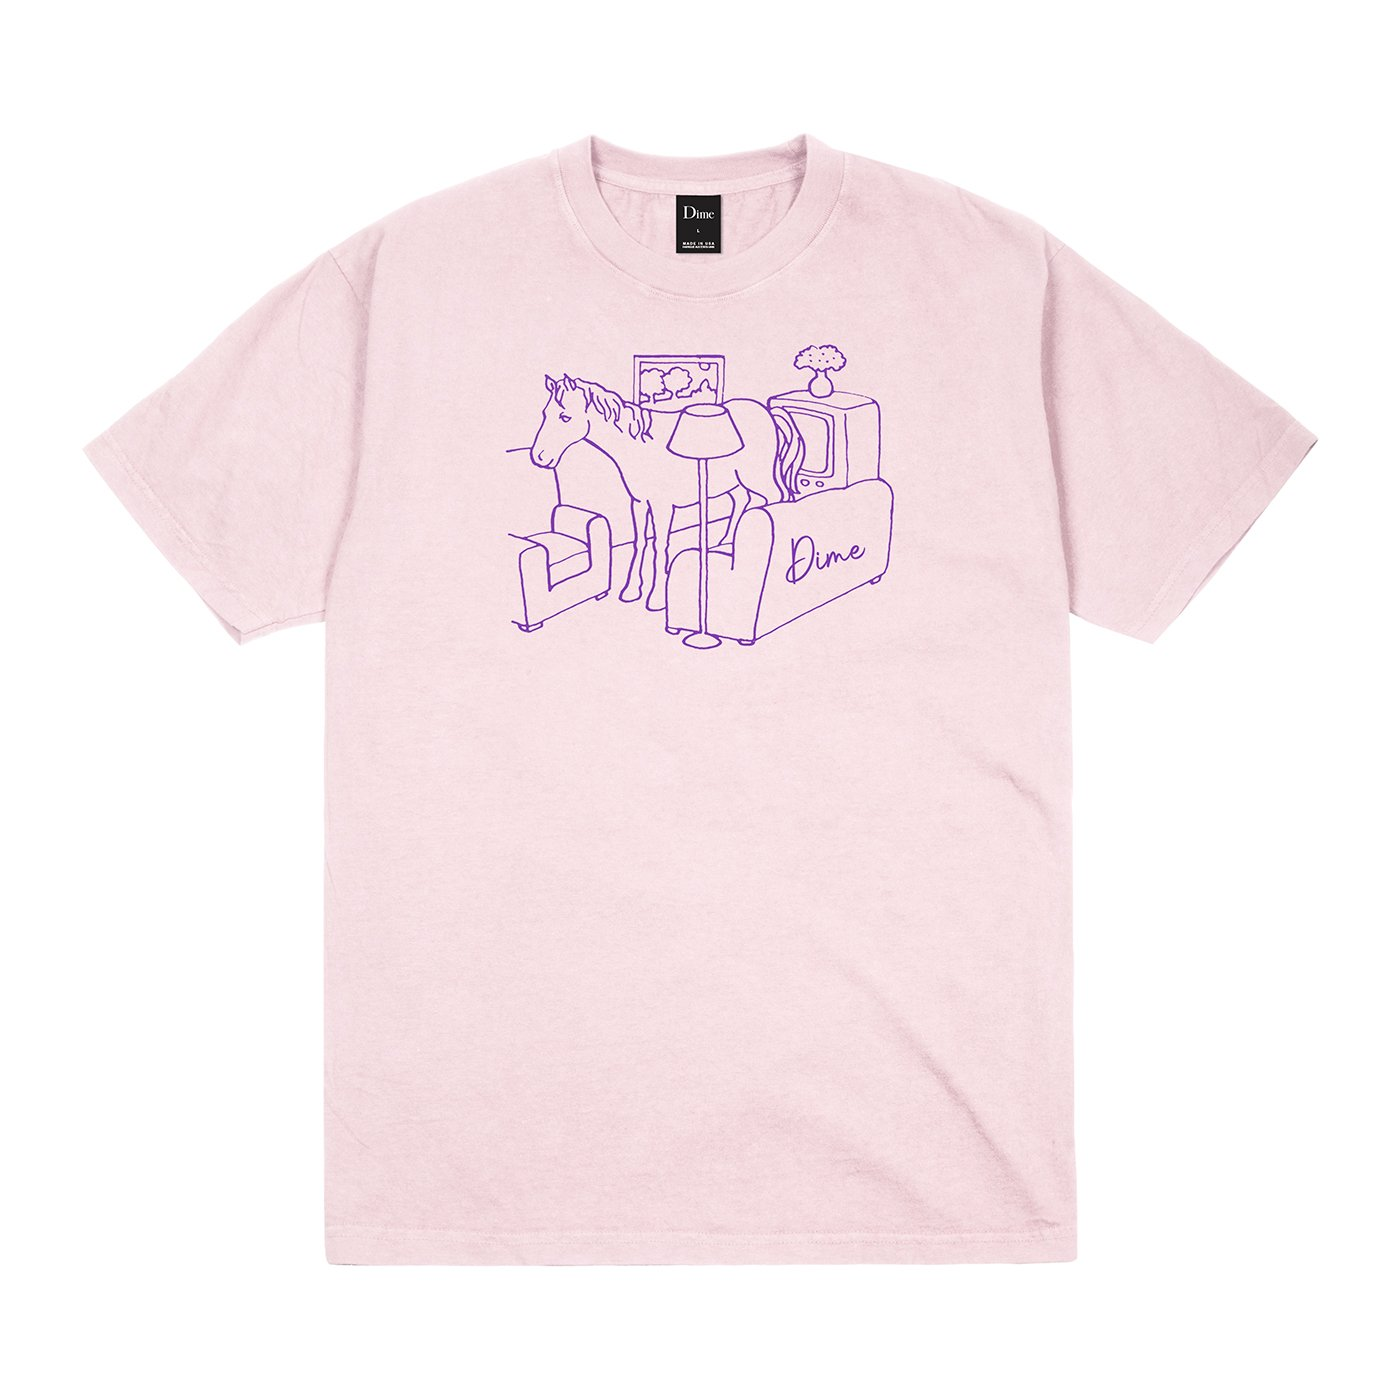 Dime Horse T-Shirt Light Pink